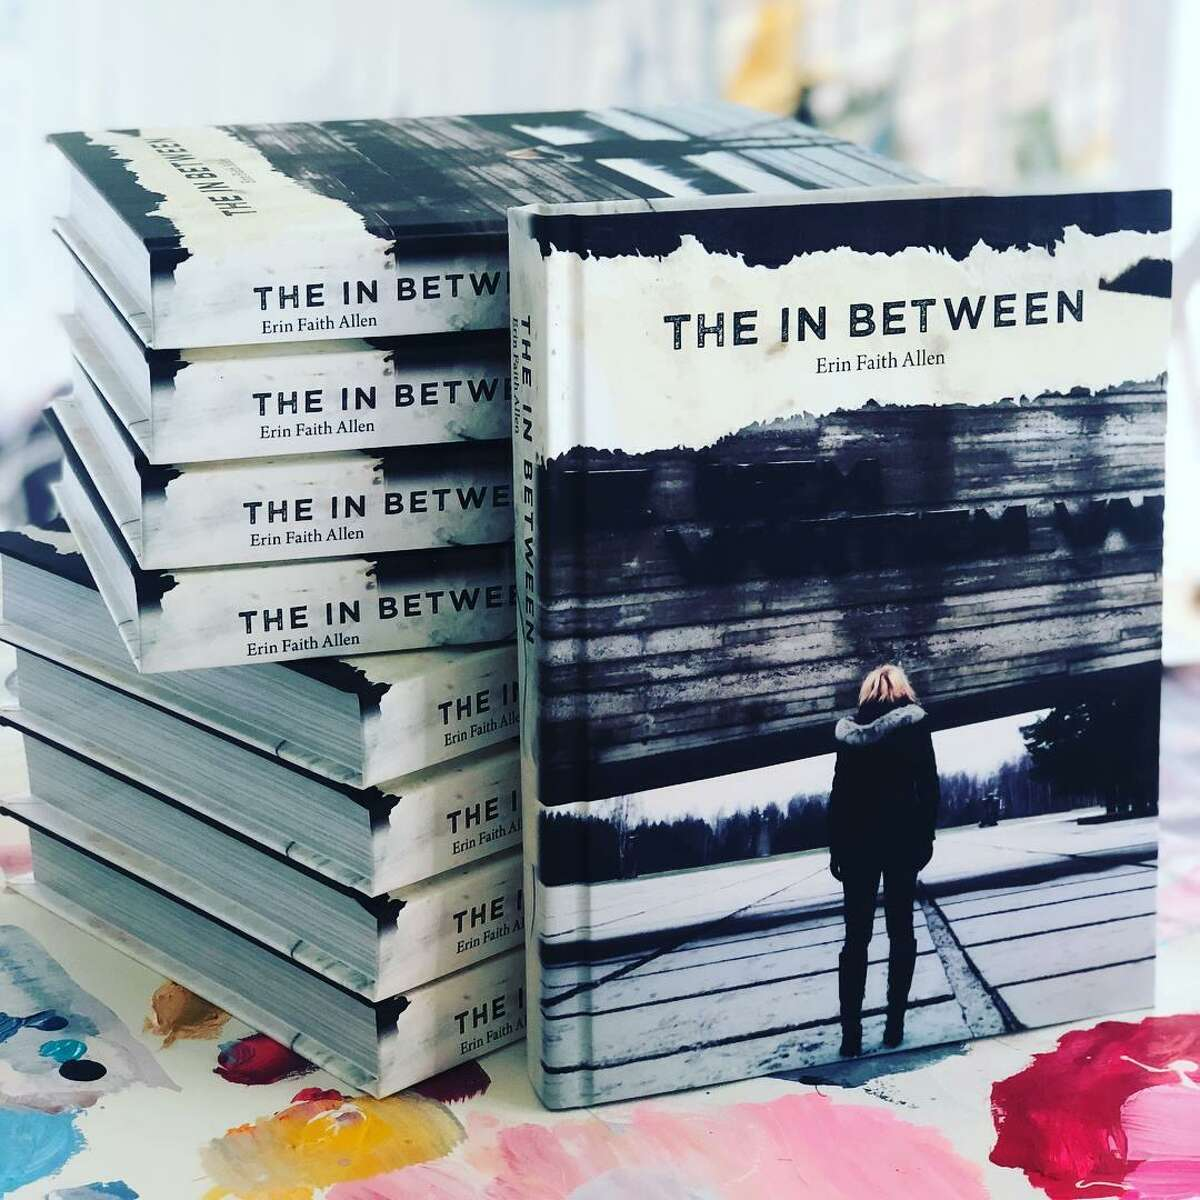 Allen's book, The In Between, can be bought online at www.erinfaithallen.com. The memoir details her time traveling through Europe's World War II sites.